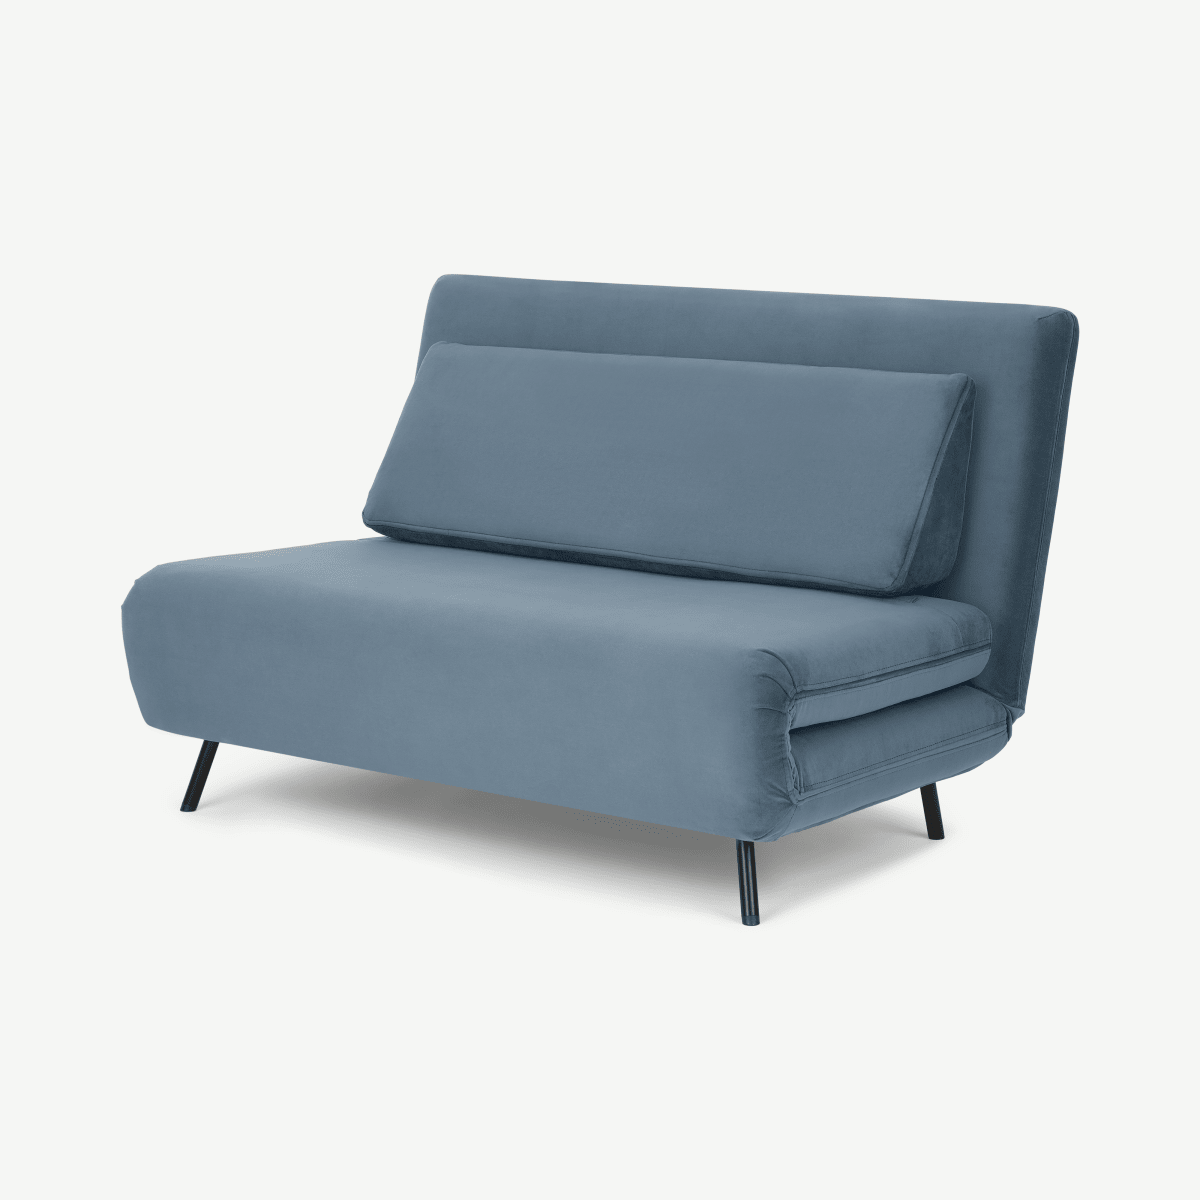 Kahlo Double Seat Sofa Bed, Arctic Blue Velvet